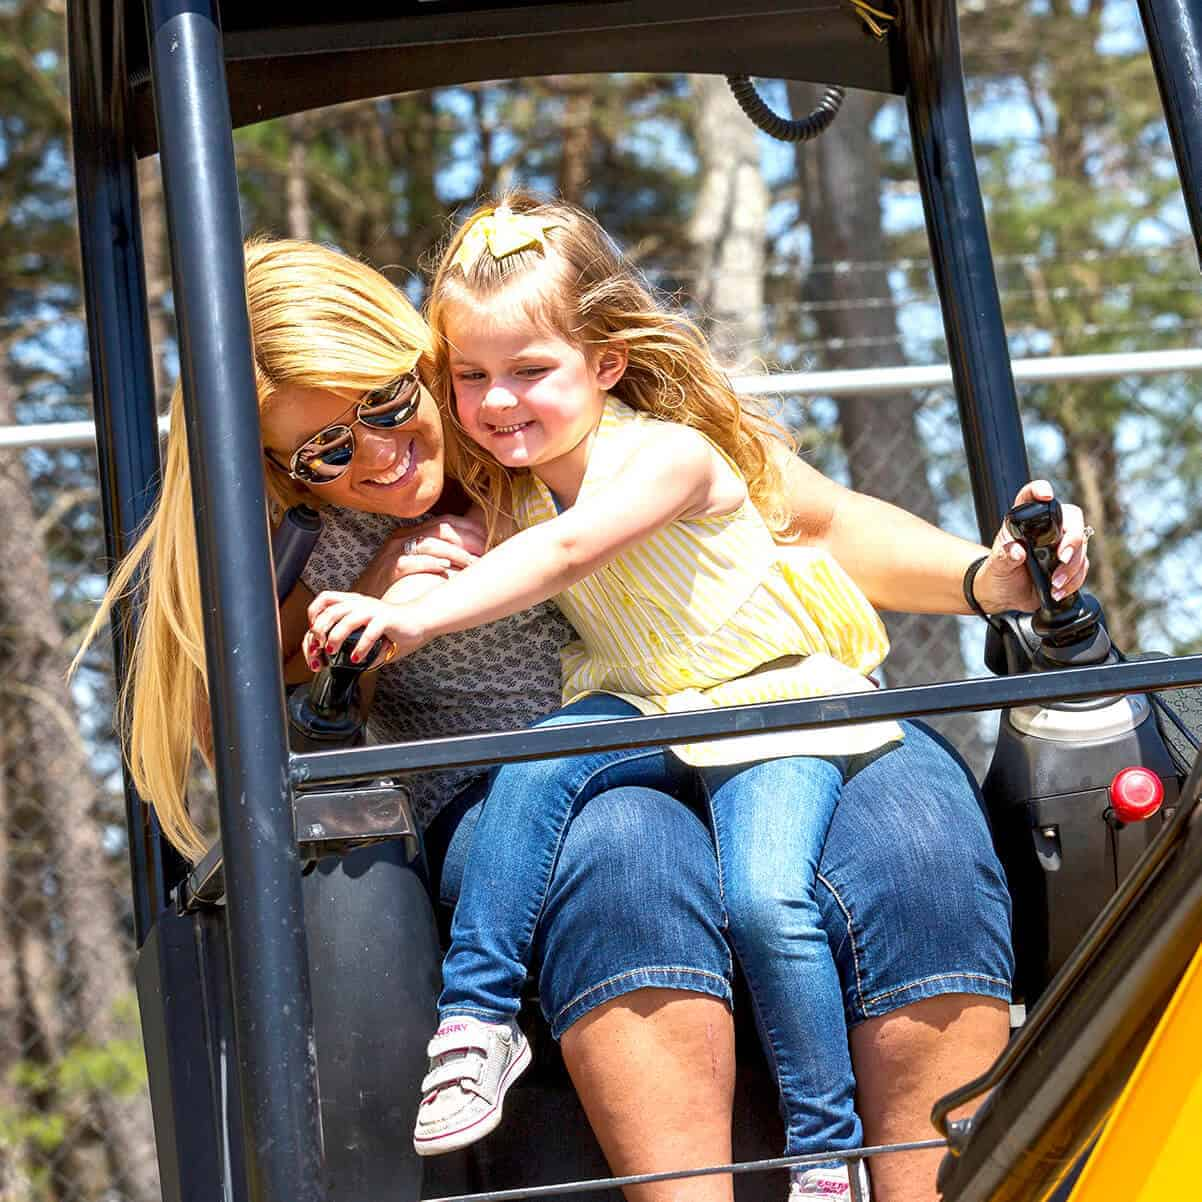 Mom and daughter smiling and playing on mini digger games